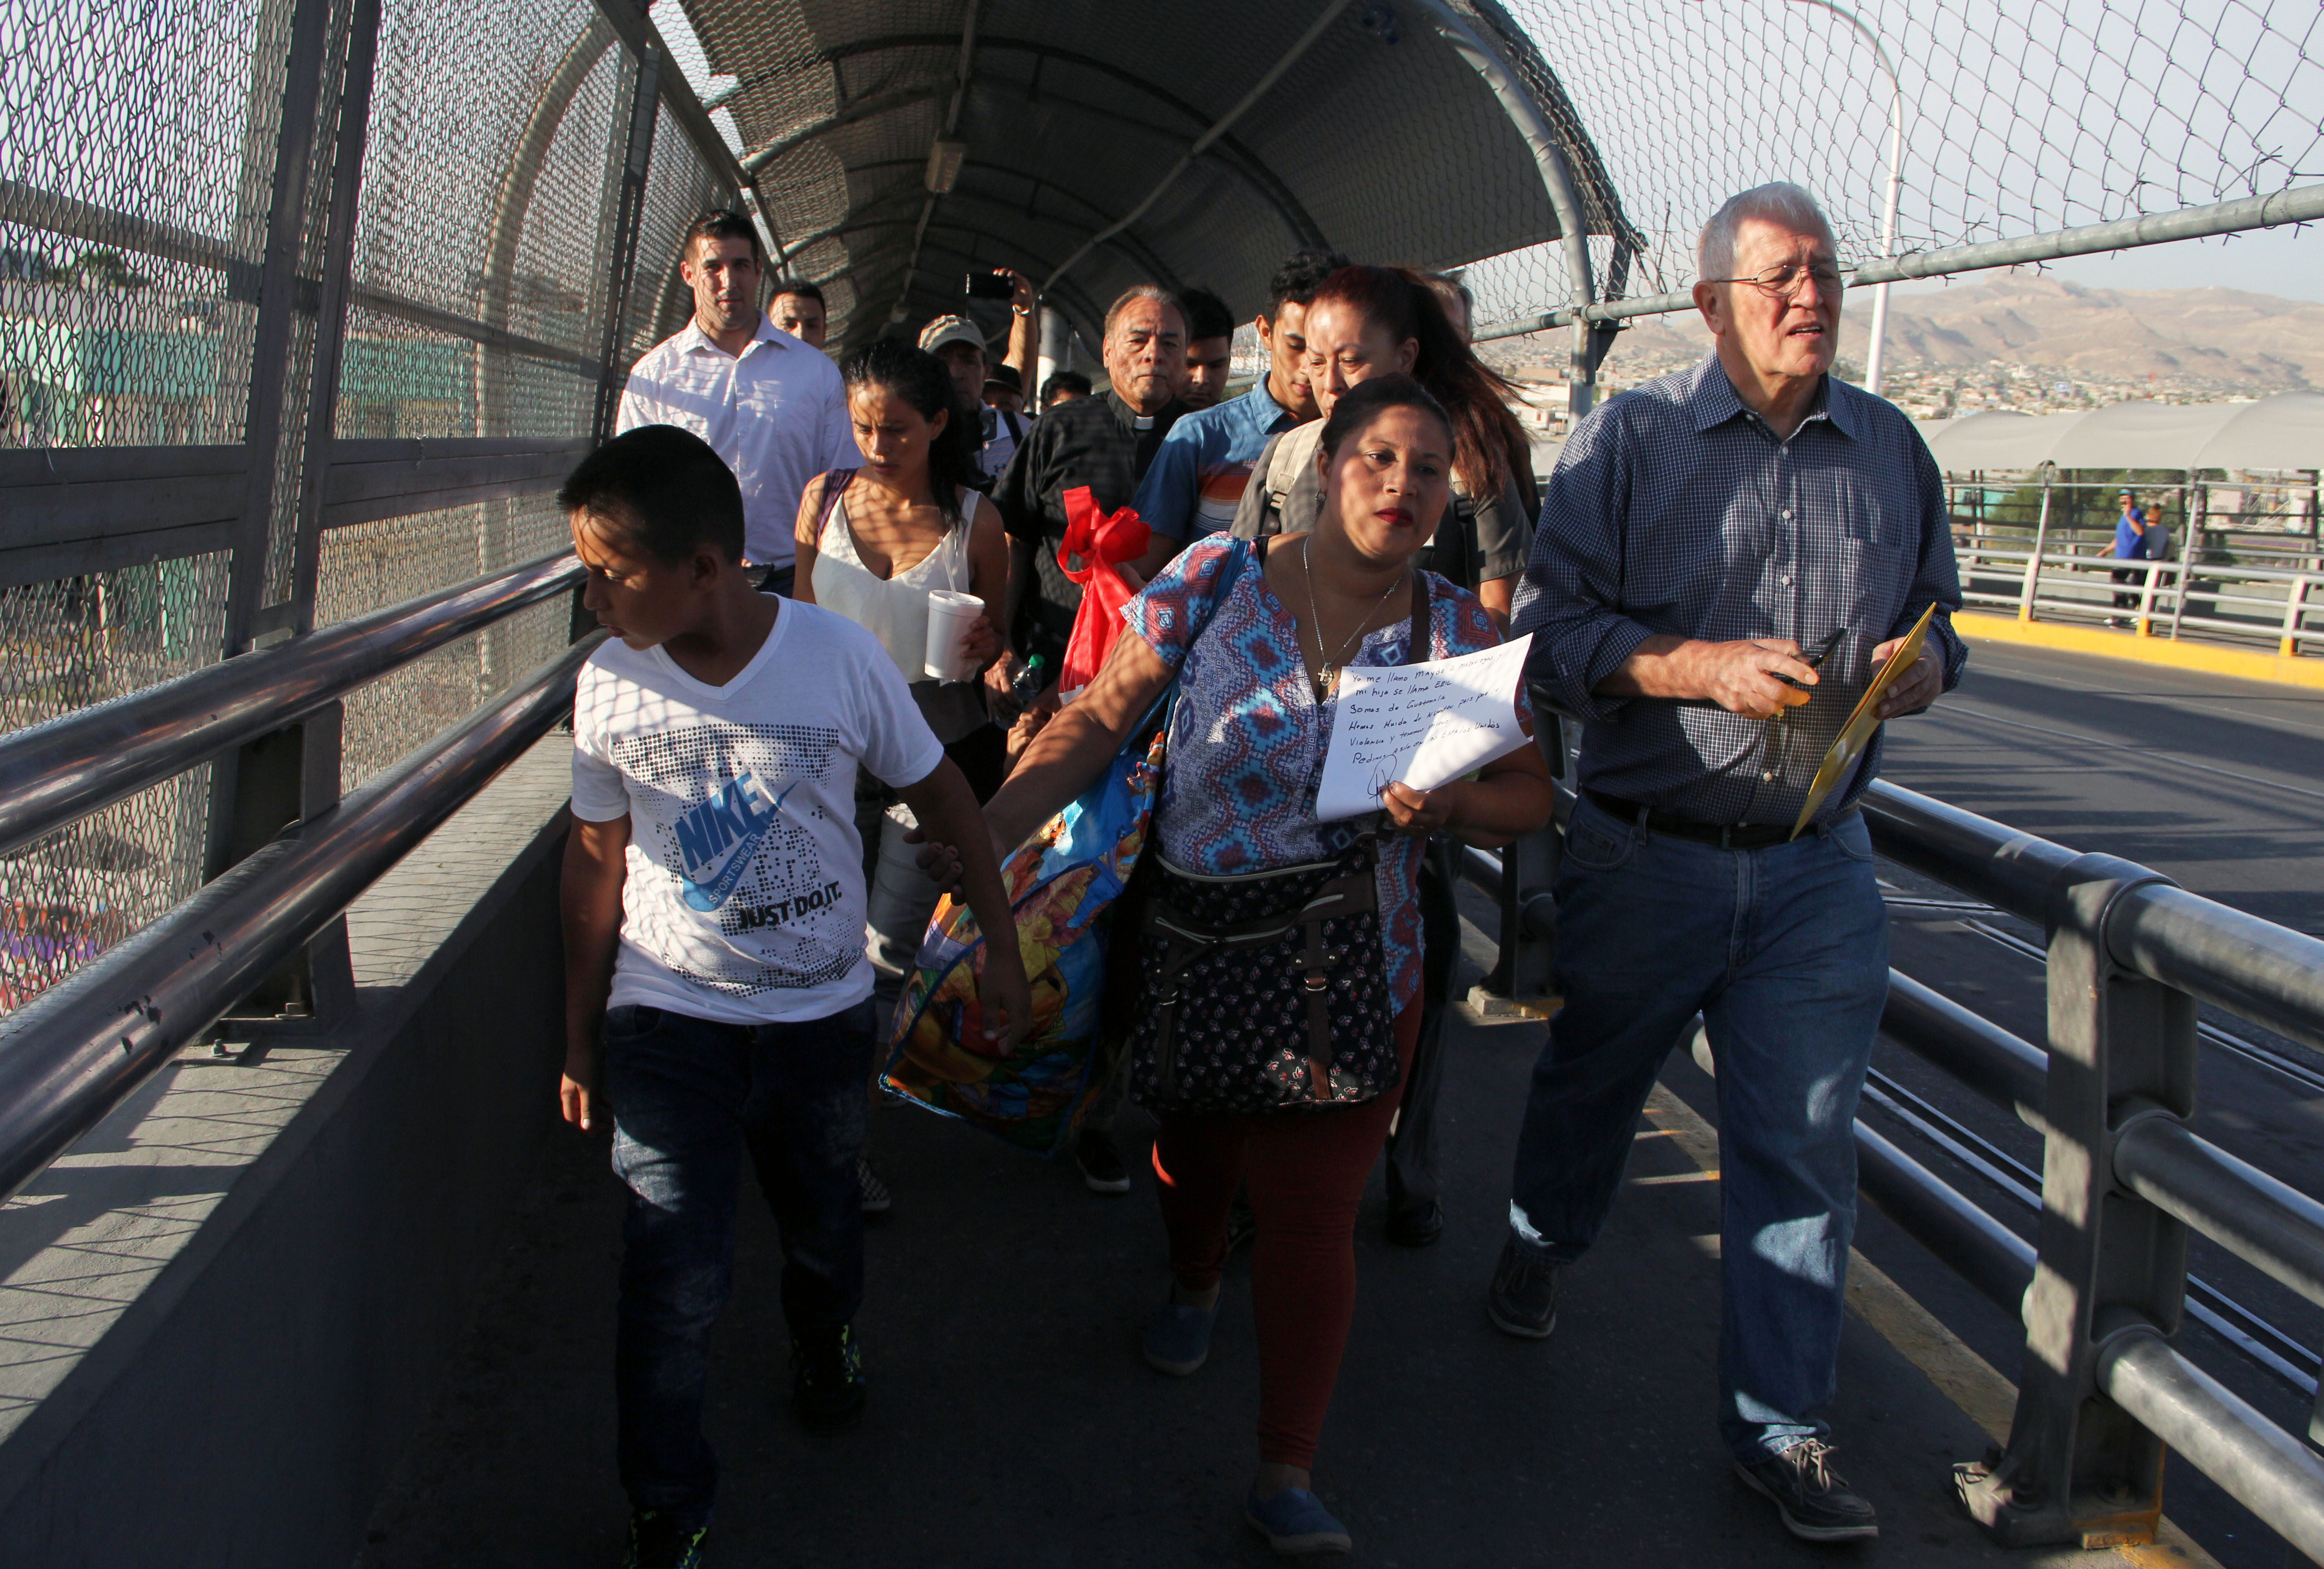 U.S. activist Ricardo Garcia (R) from Casa Asuncion shelter, accompanies six Honduran and Guatemalan migrants to ask for political asylum in U.S., at the Paso del Norte International Bridge, in Ciudad Juarez Chihuahua, Mexico on the border with El Paso, Texas, US, on June 15, 2018.